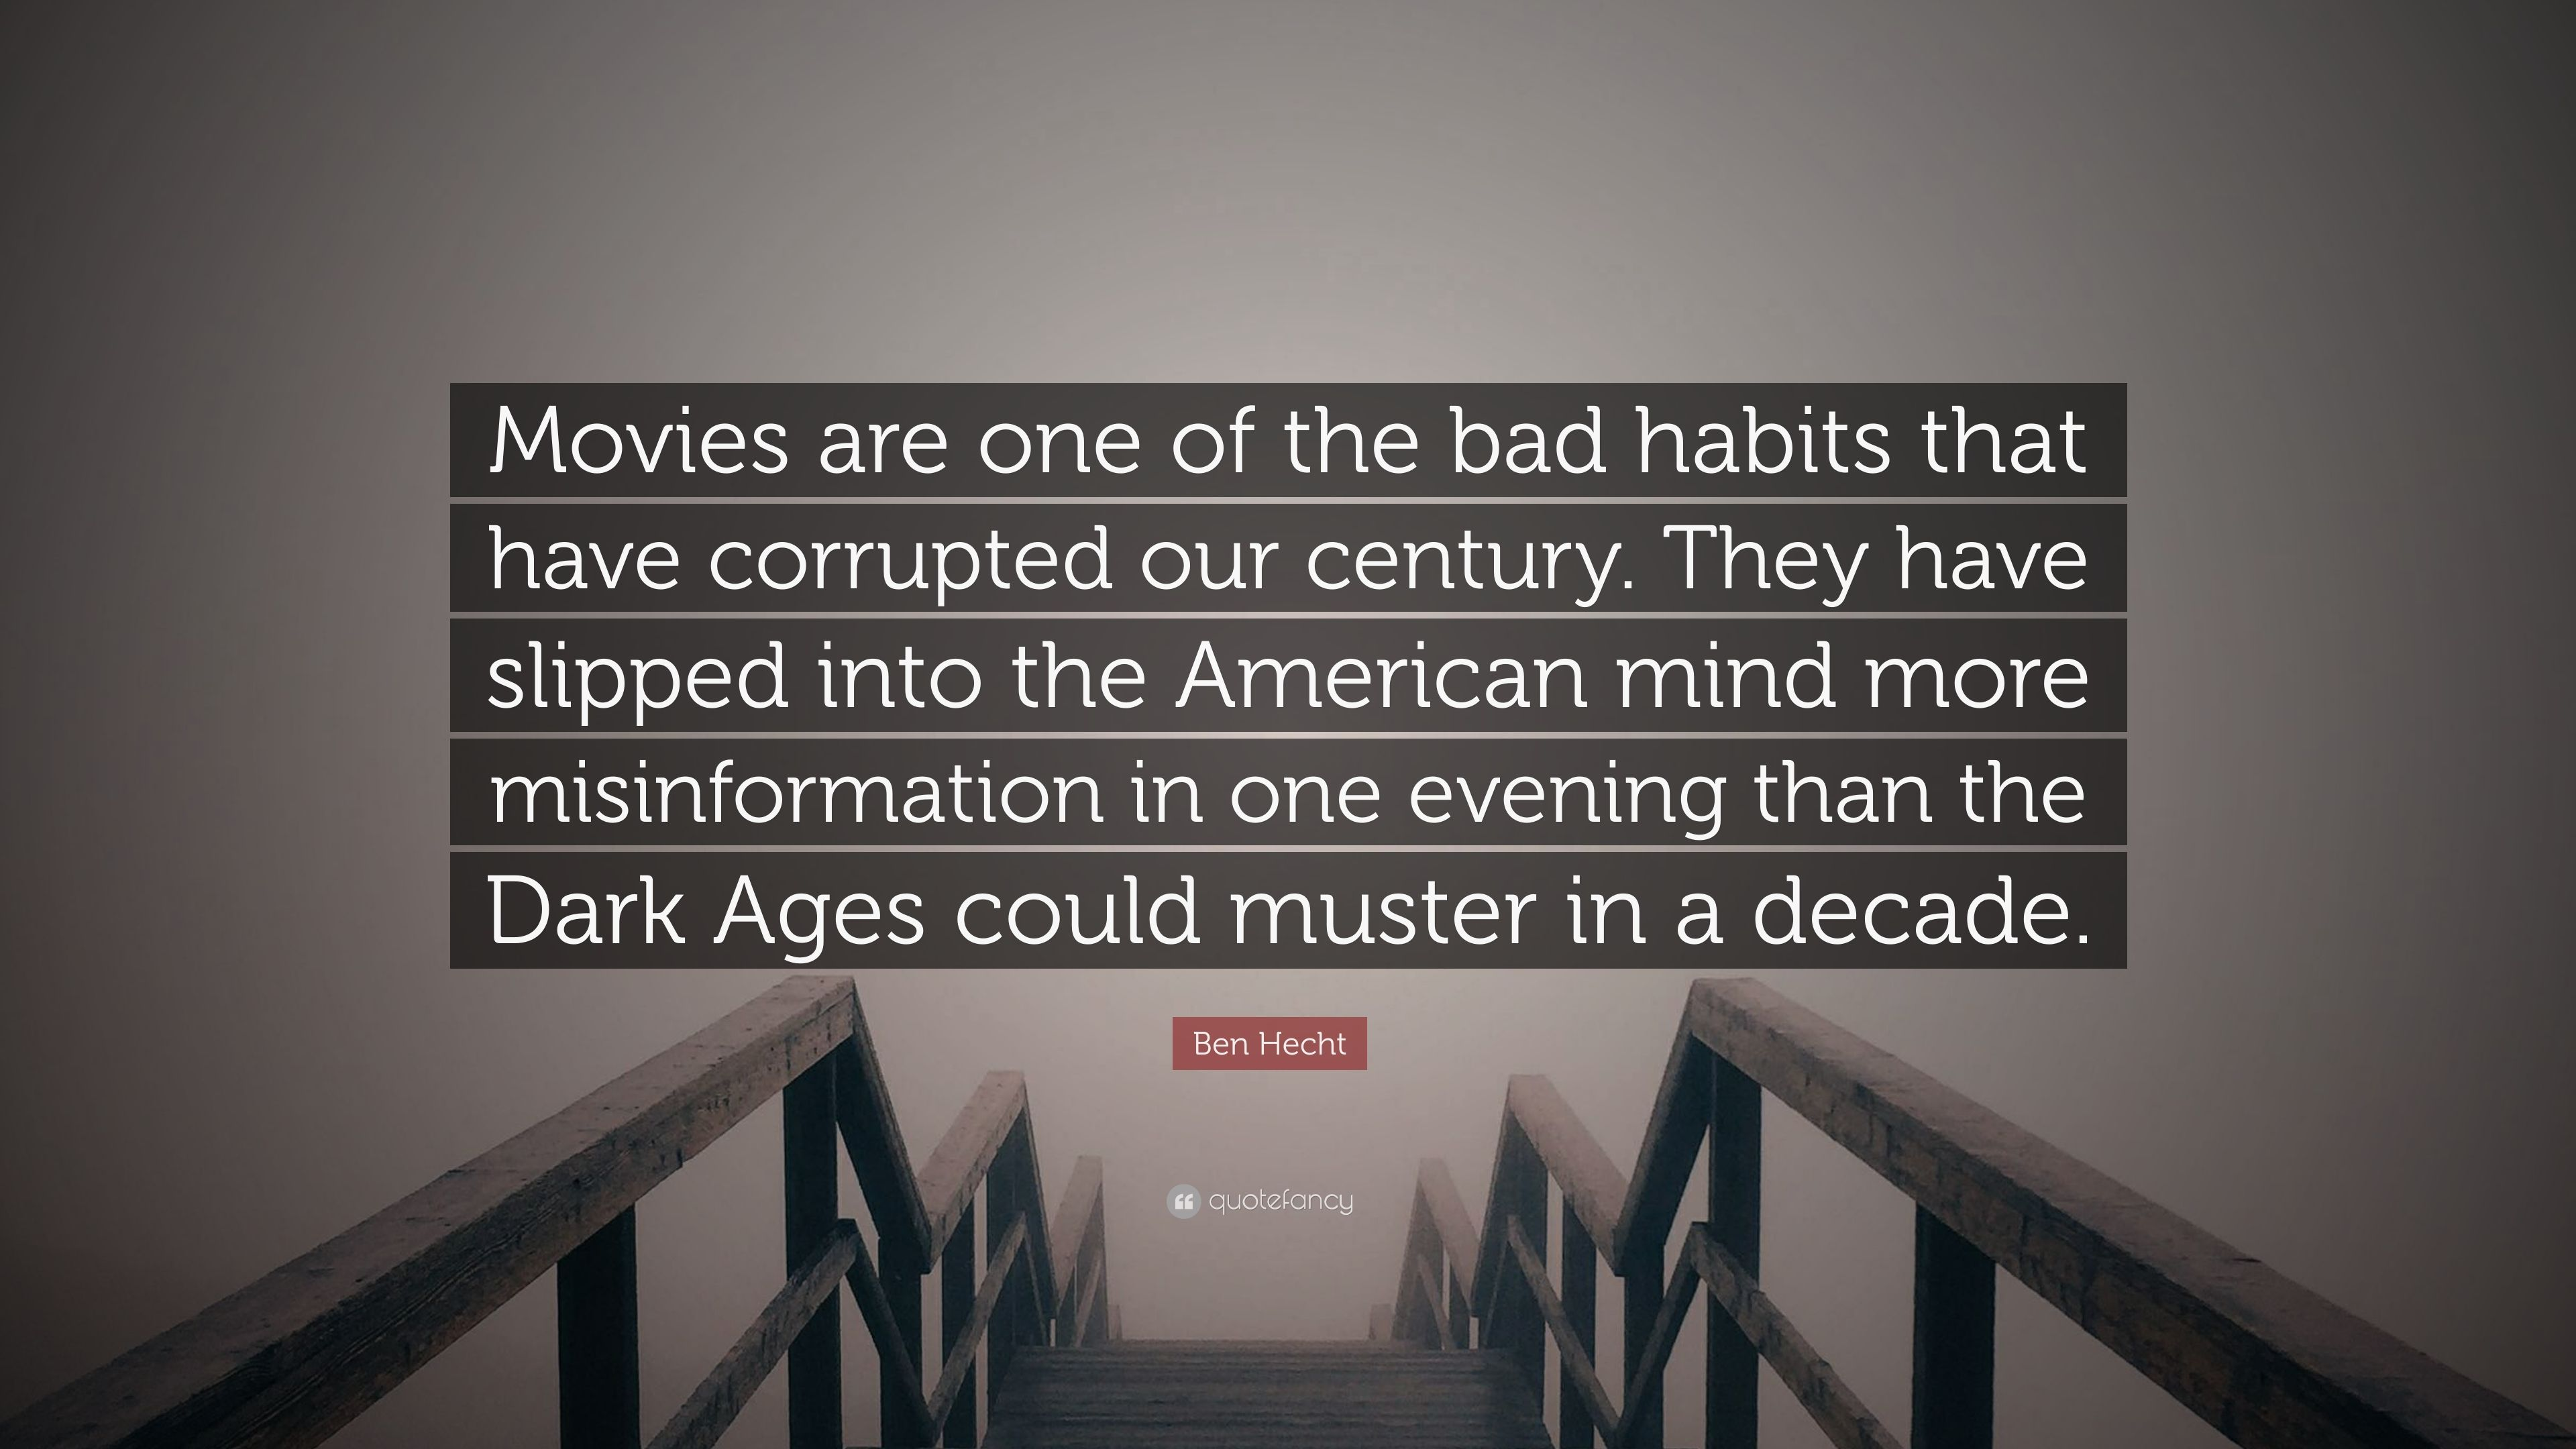 Bad Muster ben hecht quote are one of the bad habits that